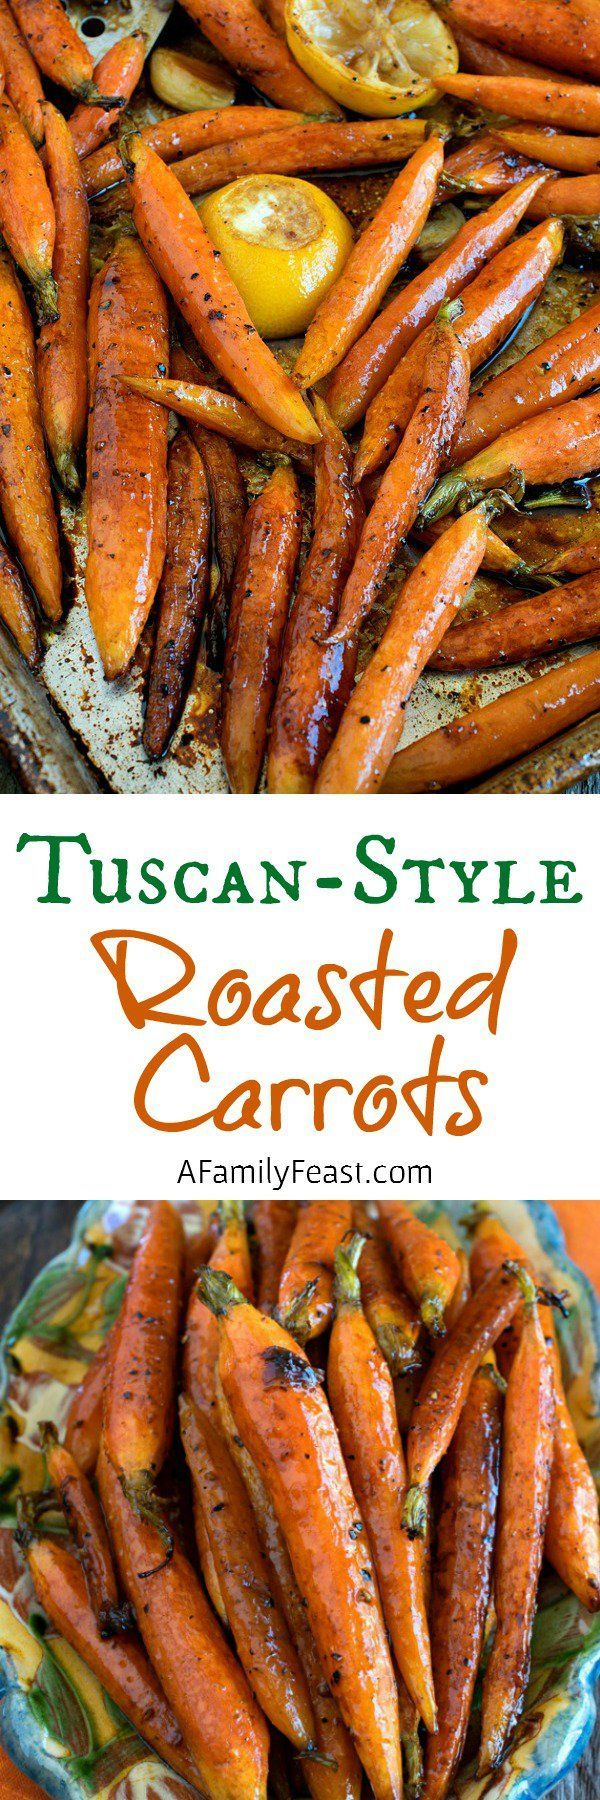 Tuscan-Style Roasted Carrots - A Family Feast